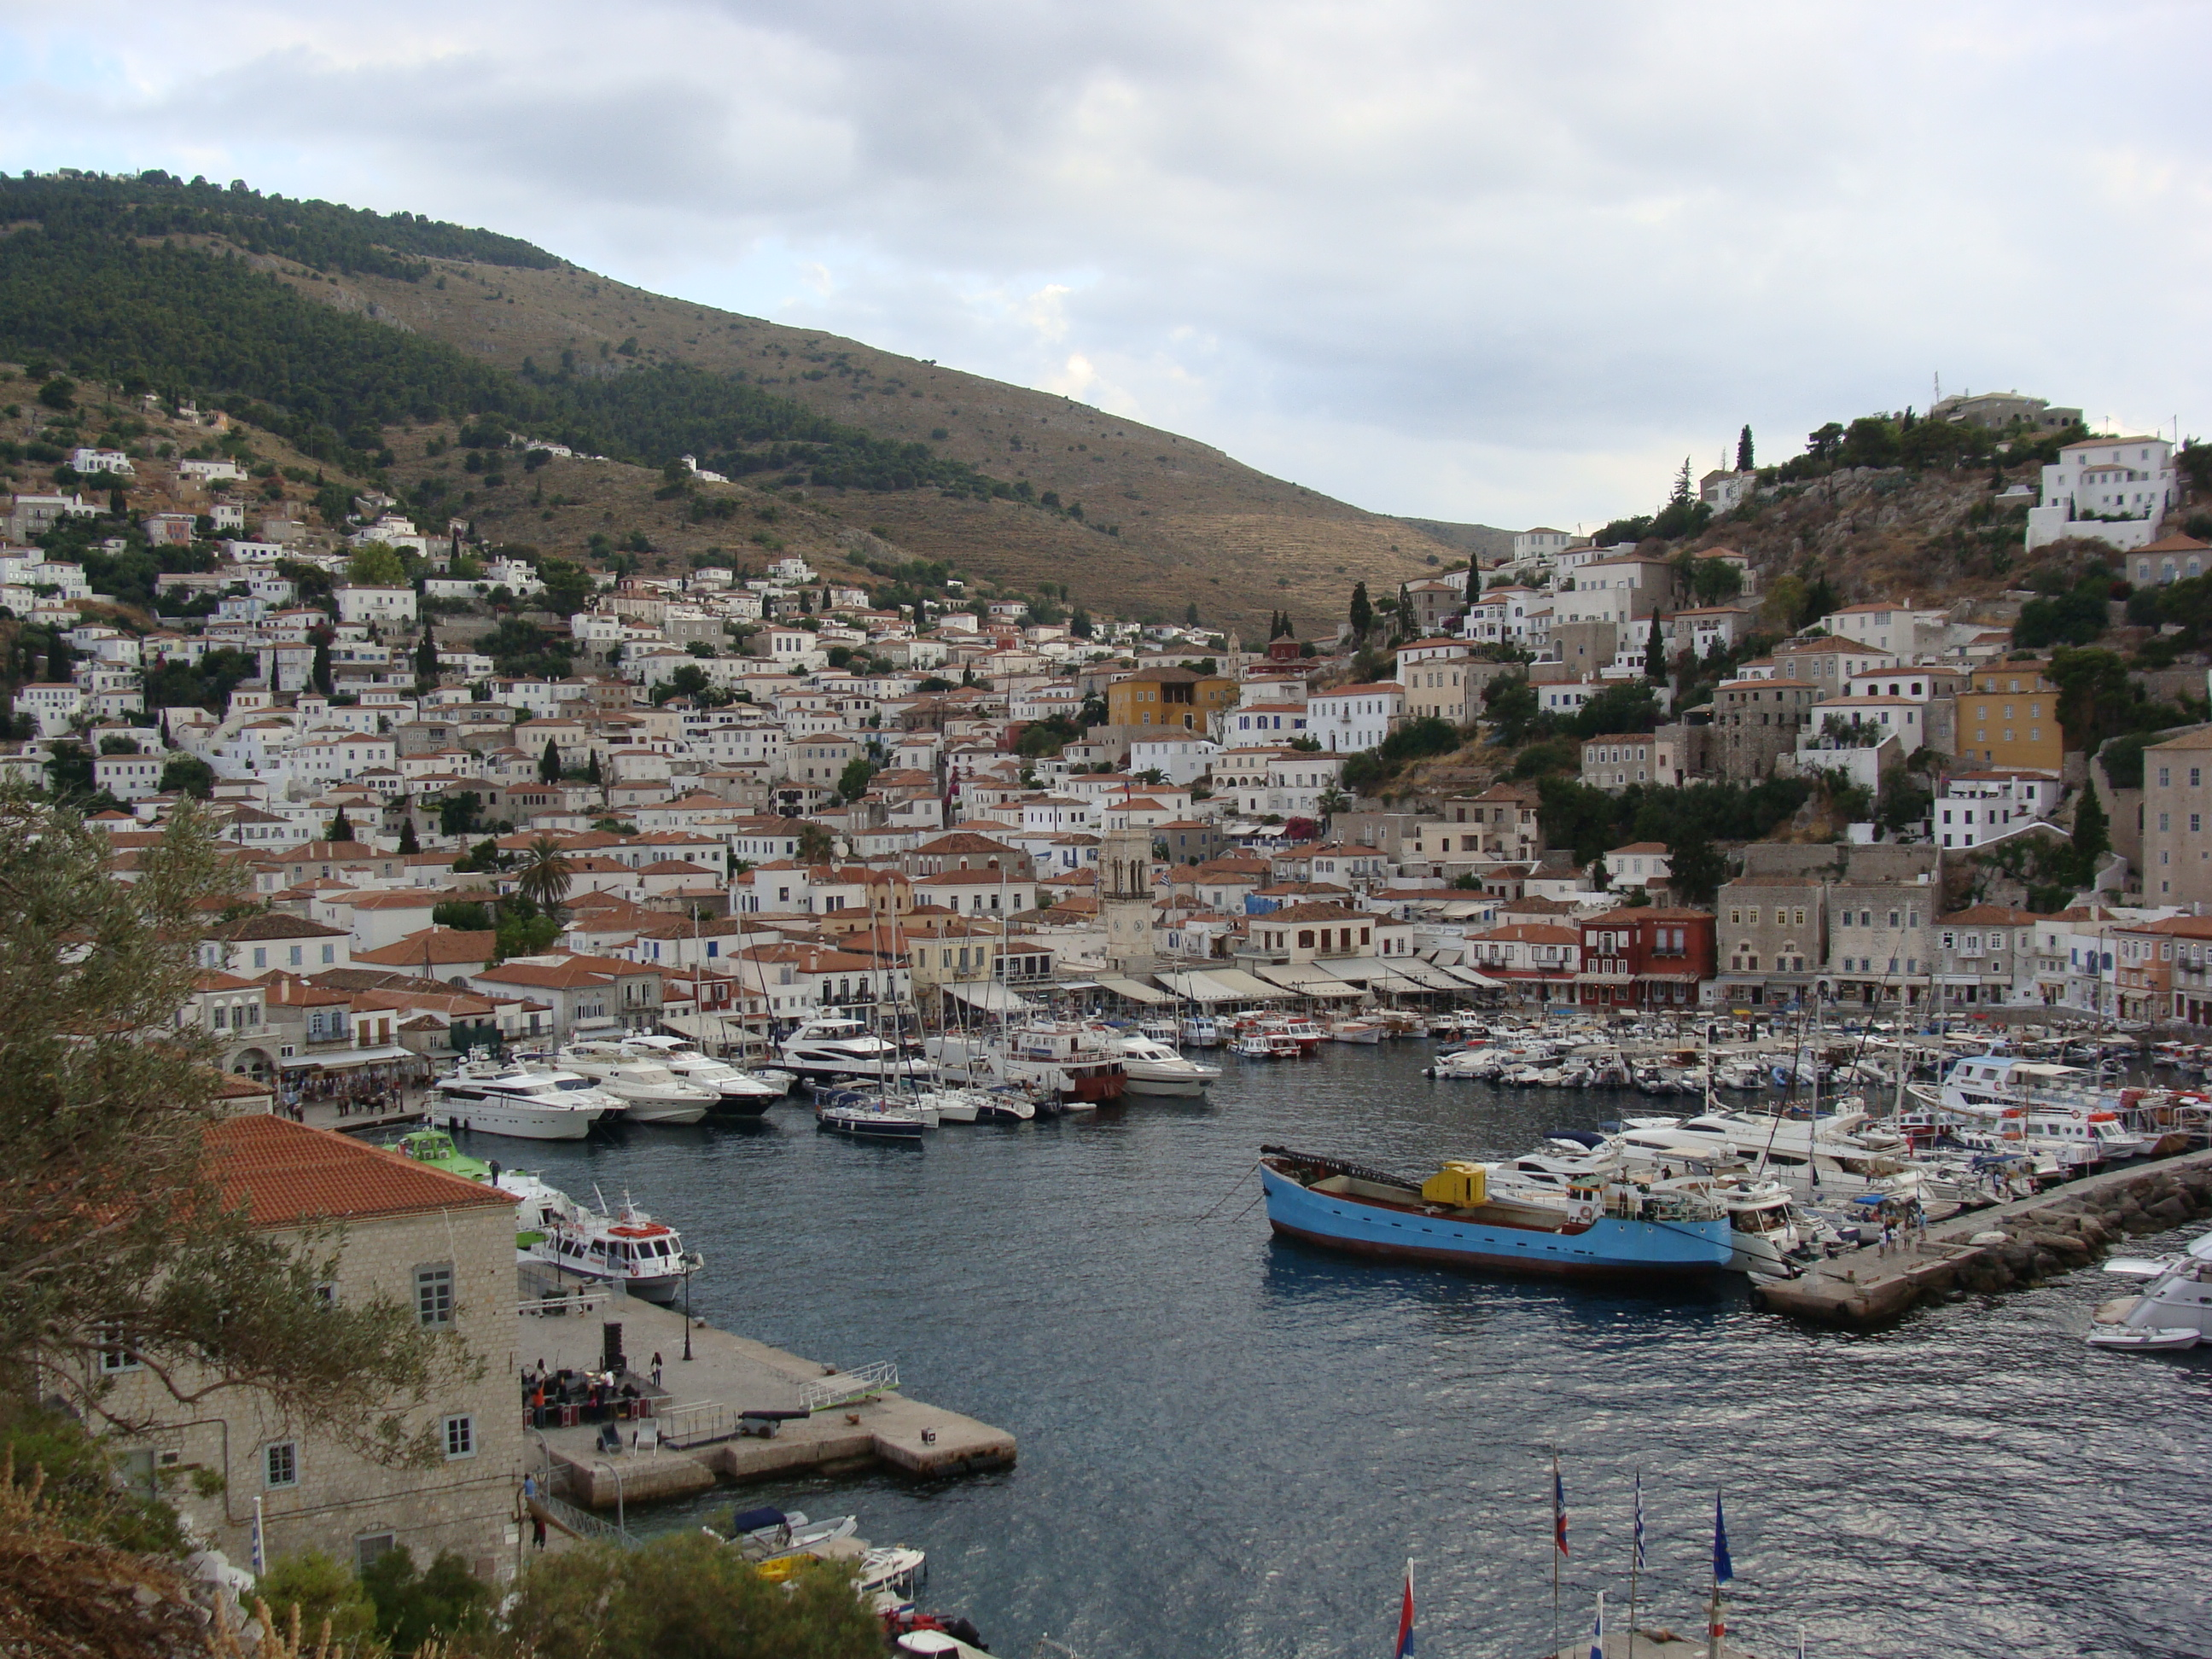 The historic port of Hydra - a wonderful sailing destination